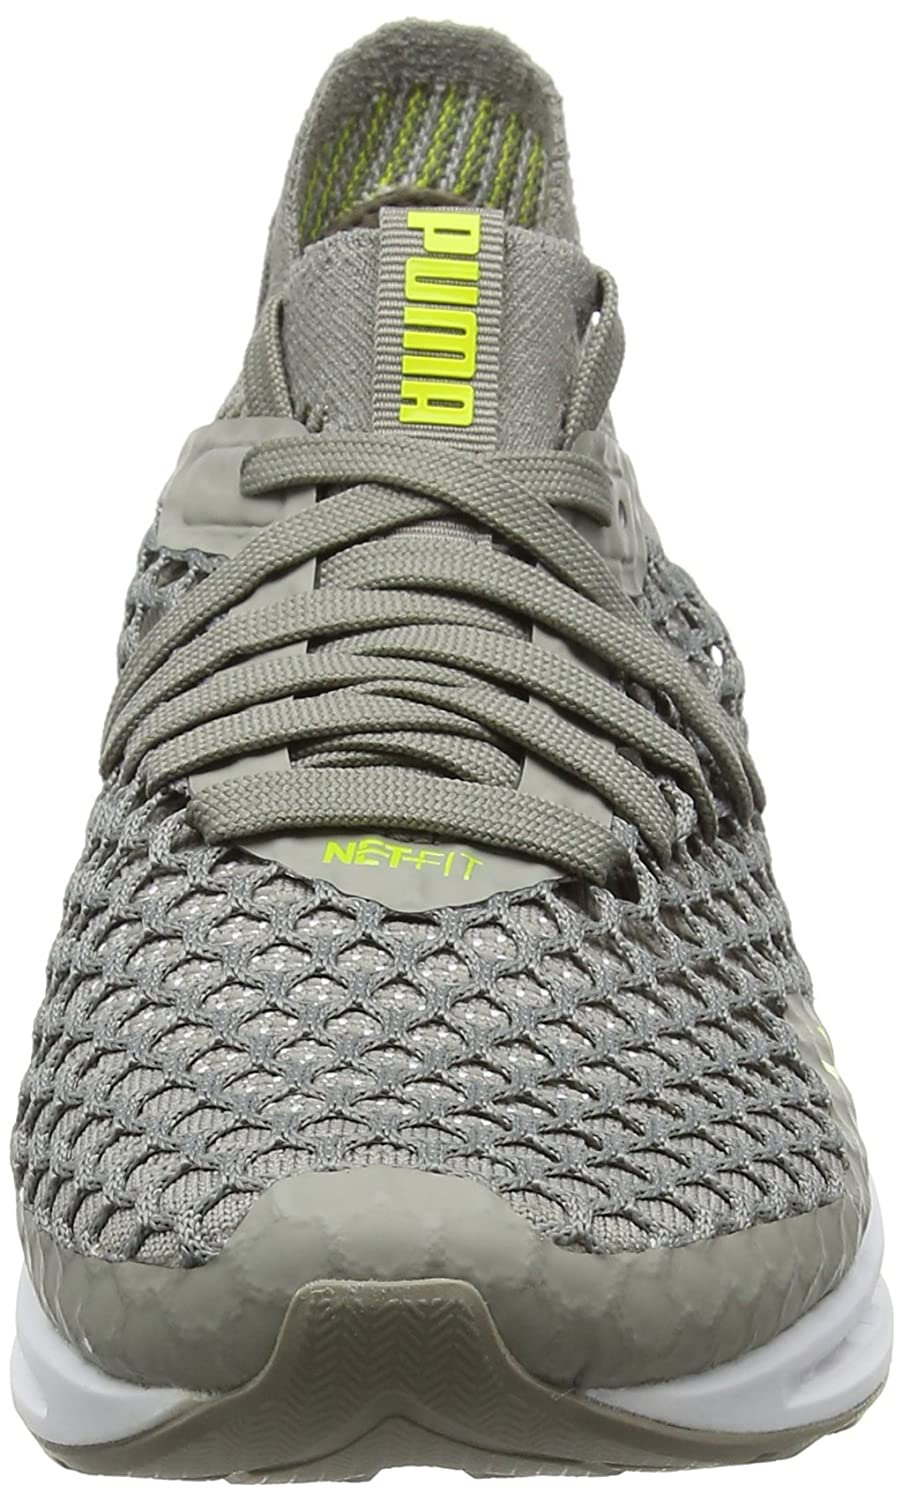 Puma Ignite Netfit Wn's, Chaussures de Cross Femme, Gris (Rock Ridge-Lemon Tonic), 37.5 EU